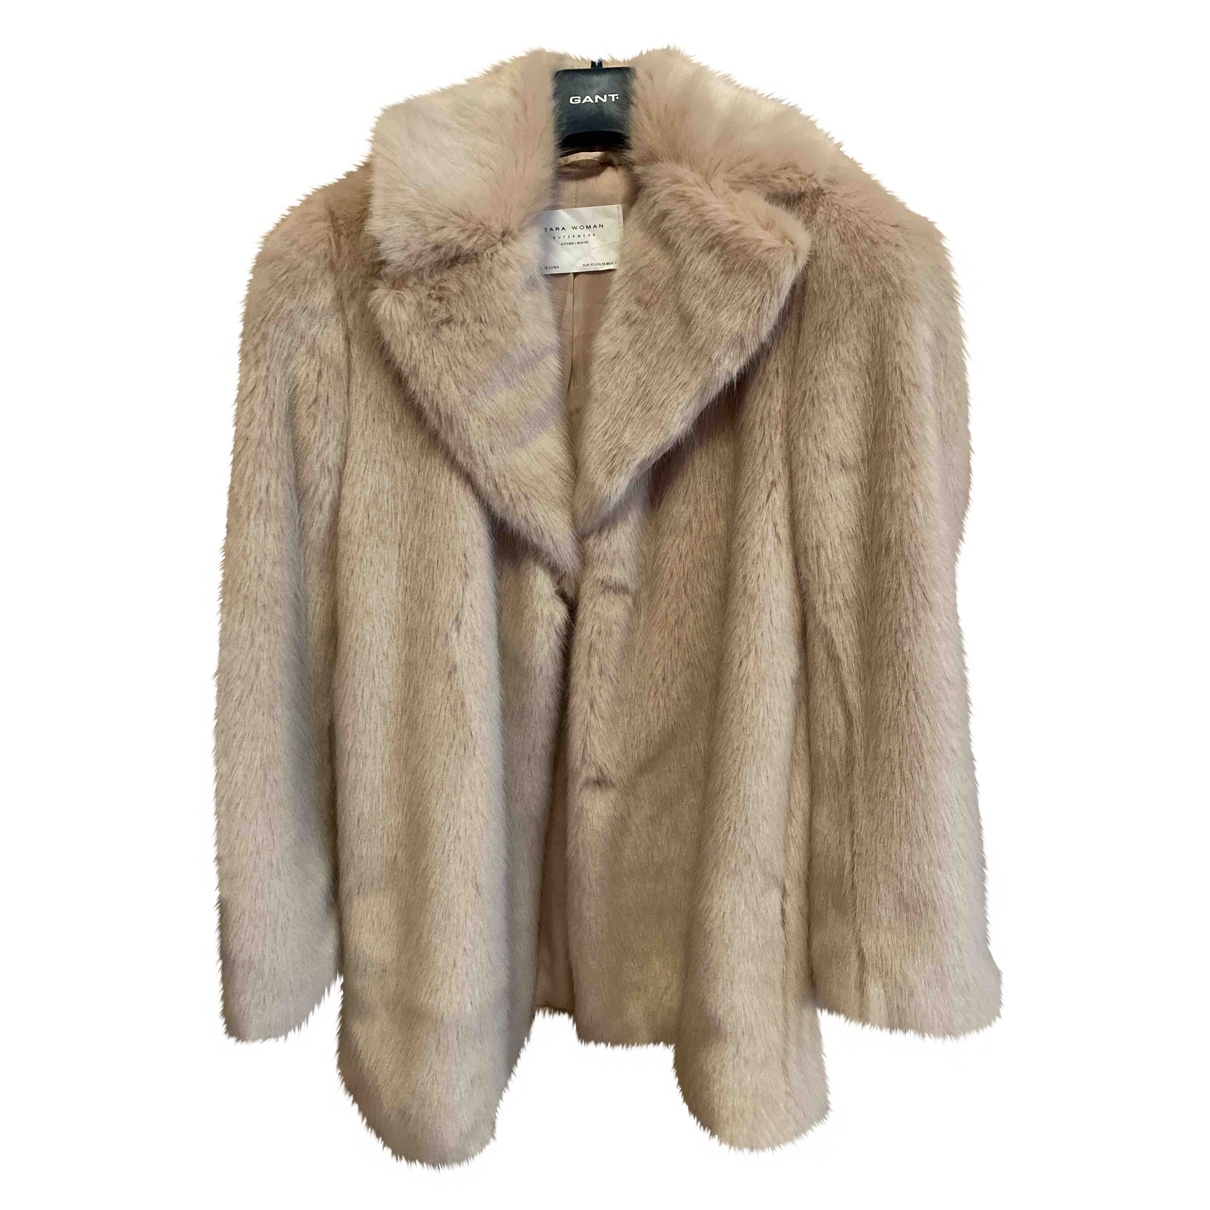 Zara \N Pink Faux fur coat for Women XS International